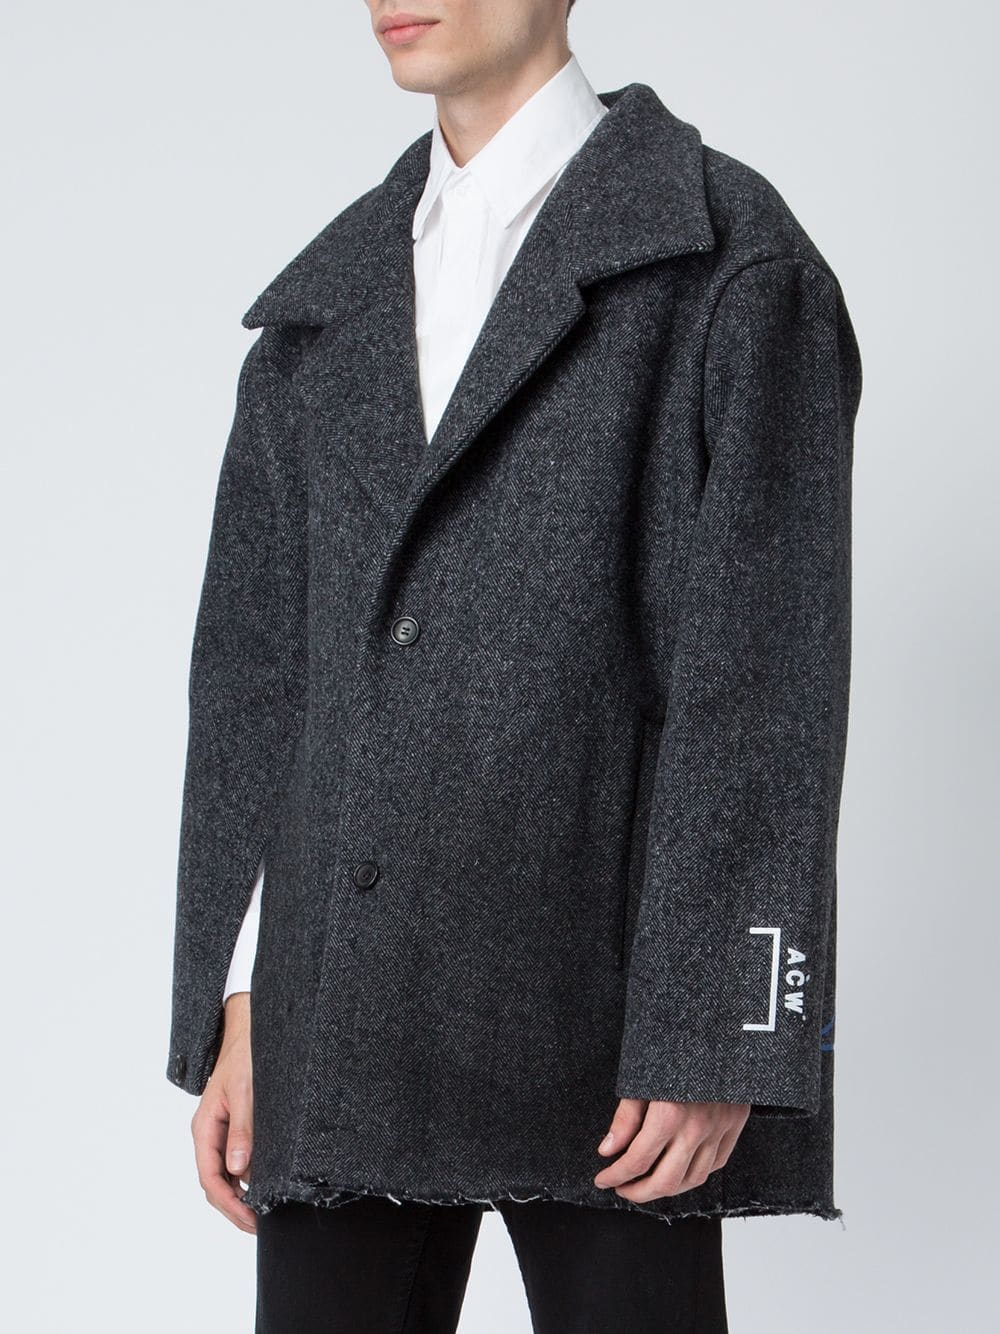 PAUSE or Skip: A-COLD-WALL* Herringbone Coat